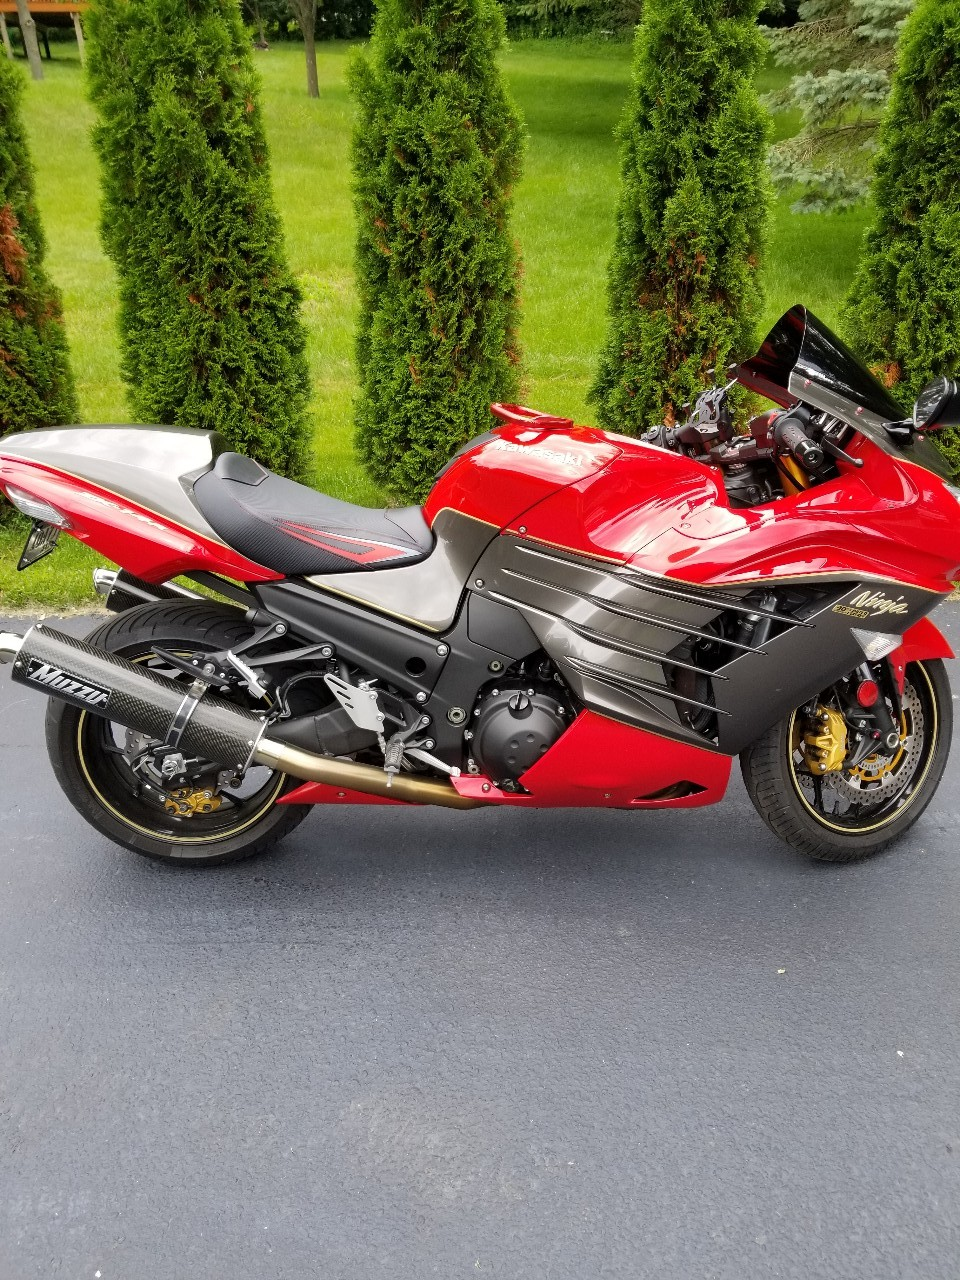 Wisconsin - Motorcycles For Sale - Cycle Trader